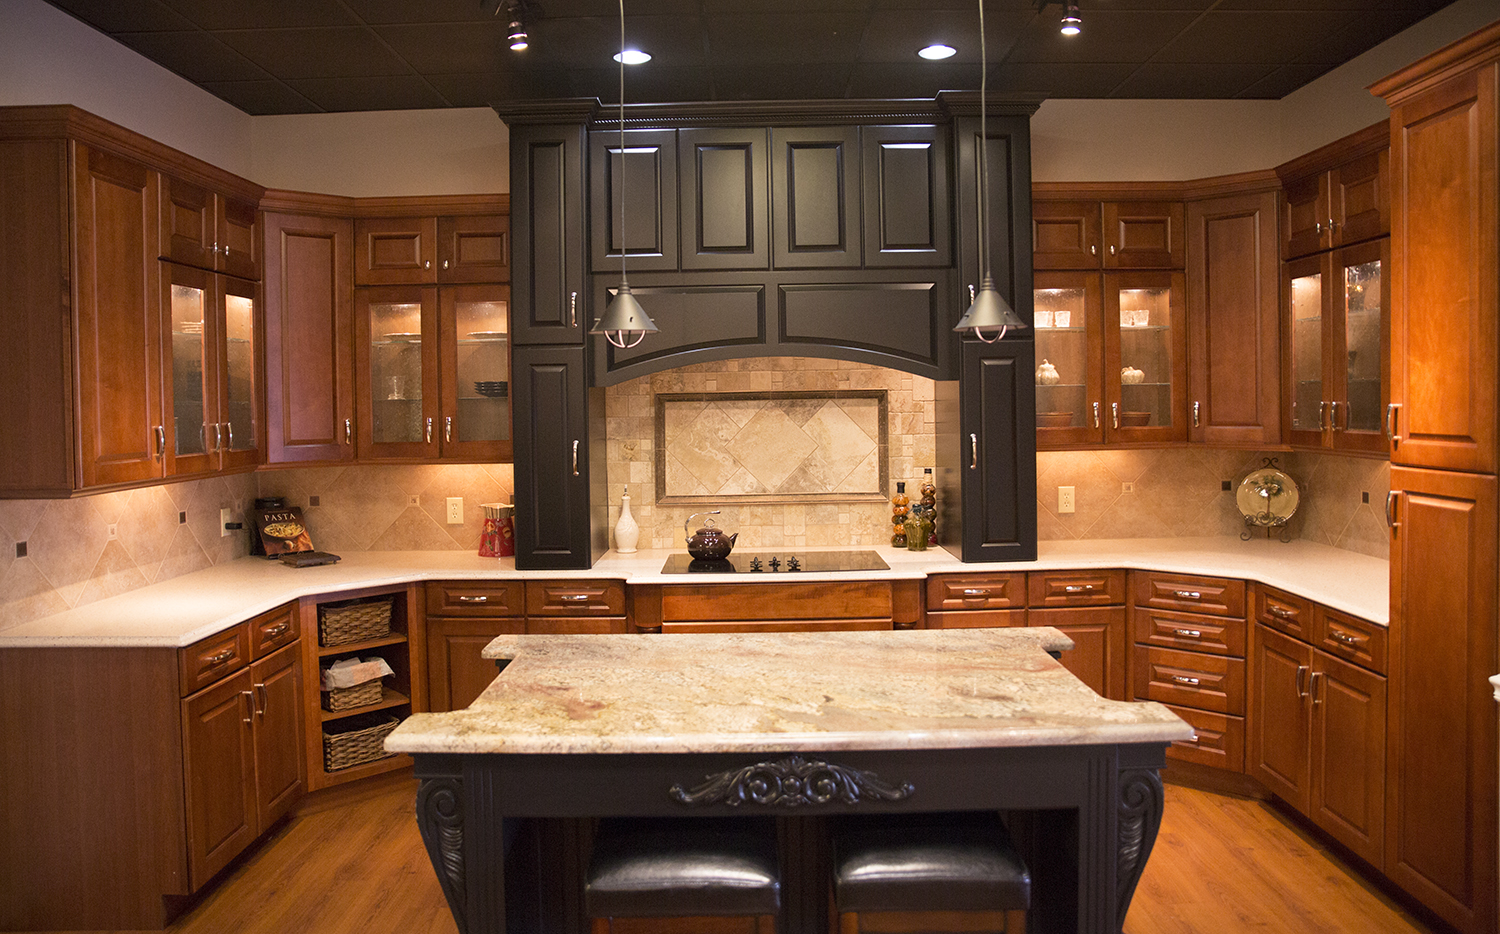 Kitchen Melbourne Marsh Furniture Gallery Kitchen Bath Remodel Custom Cabinets